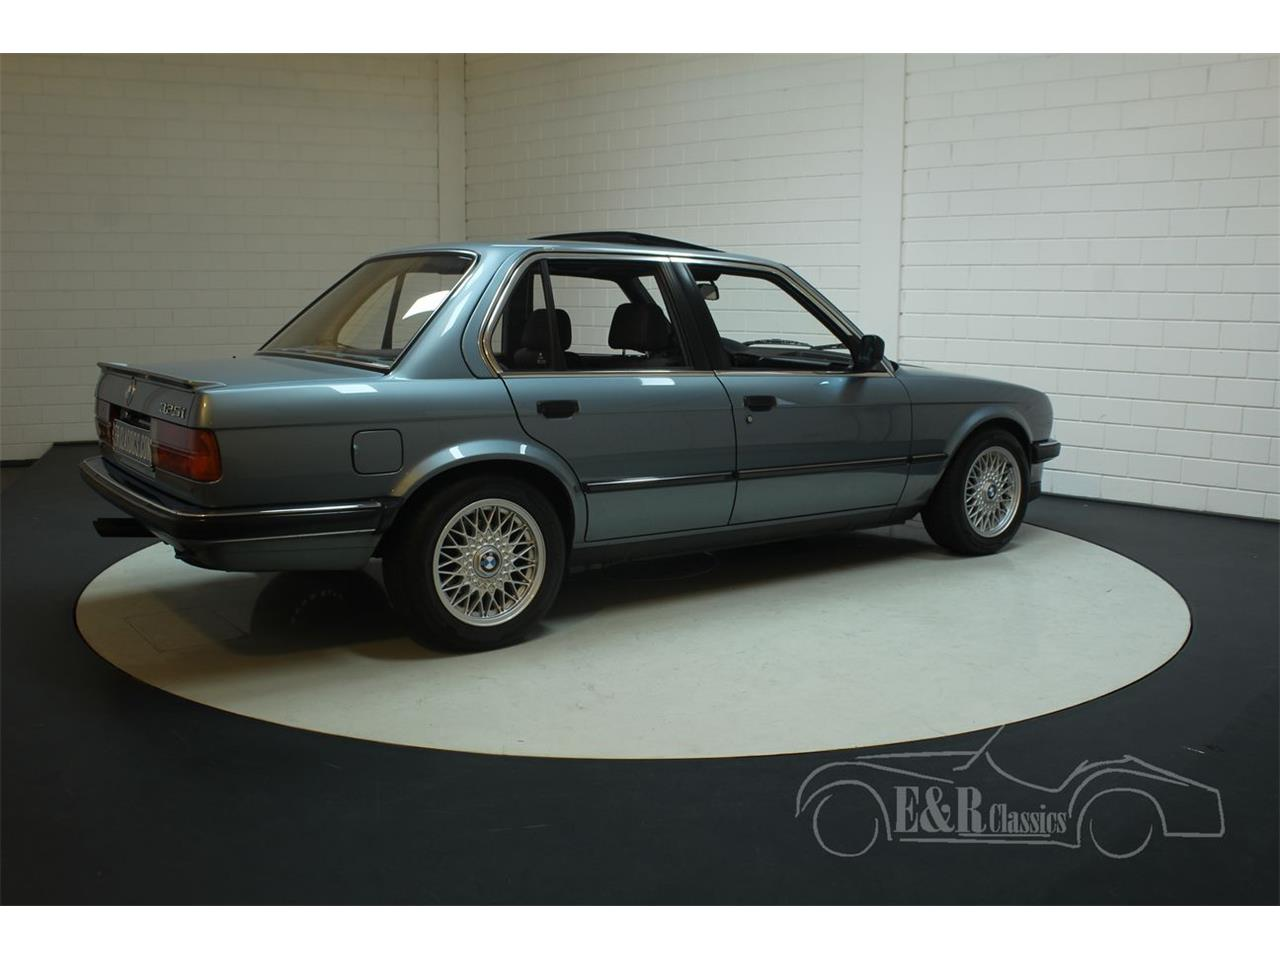 Large Picture of '86 BMW 325i located in Waalwijk - Keine Angabe - - $33,850.00 - PGT1